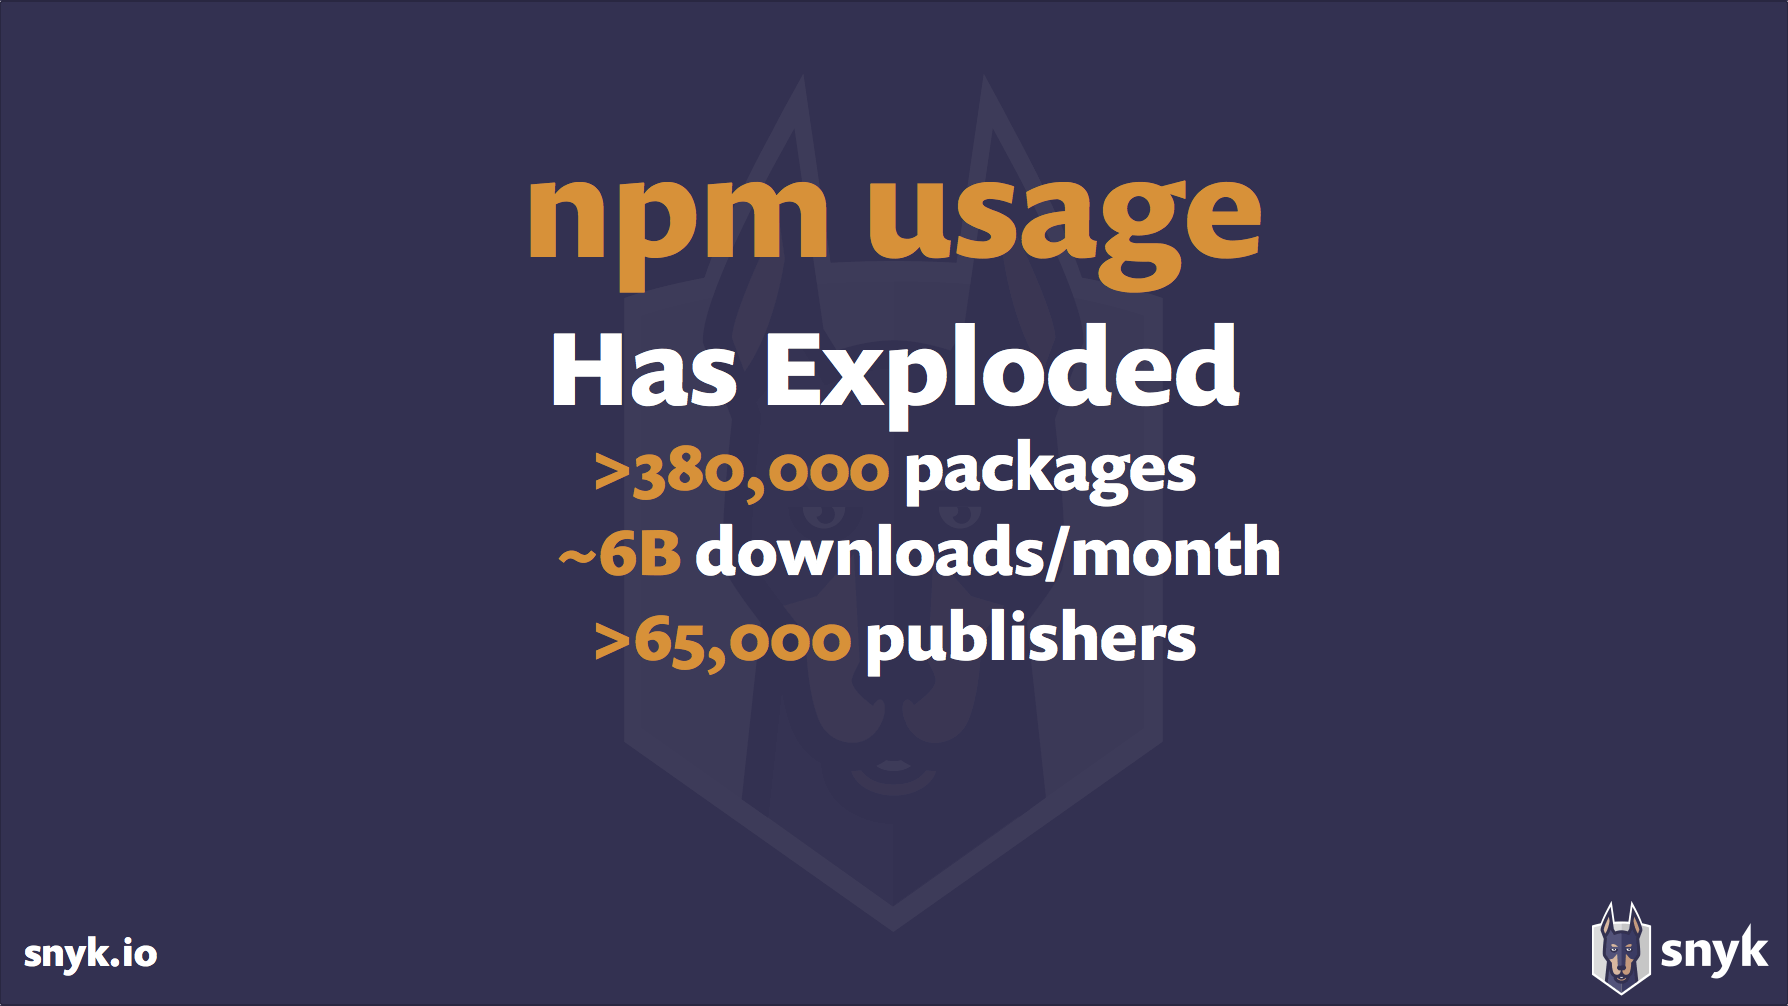 npm Usage has Exploded